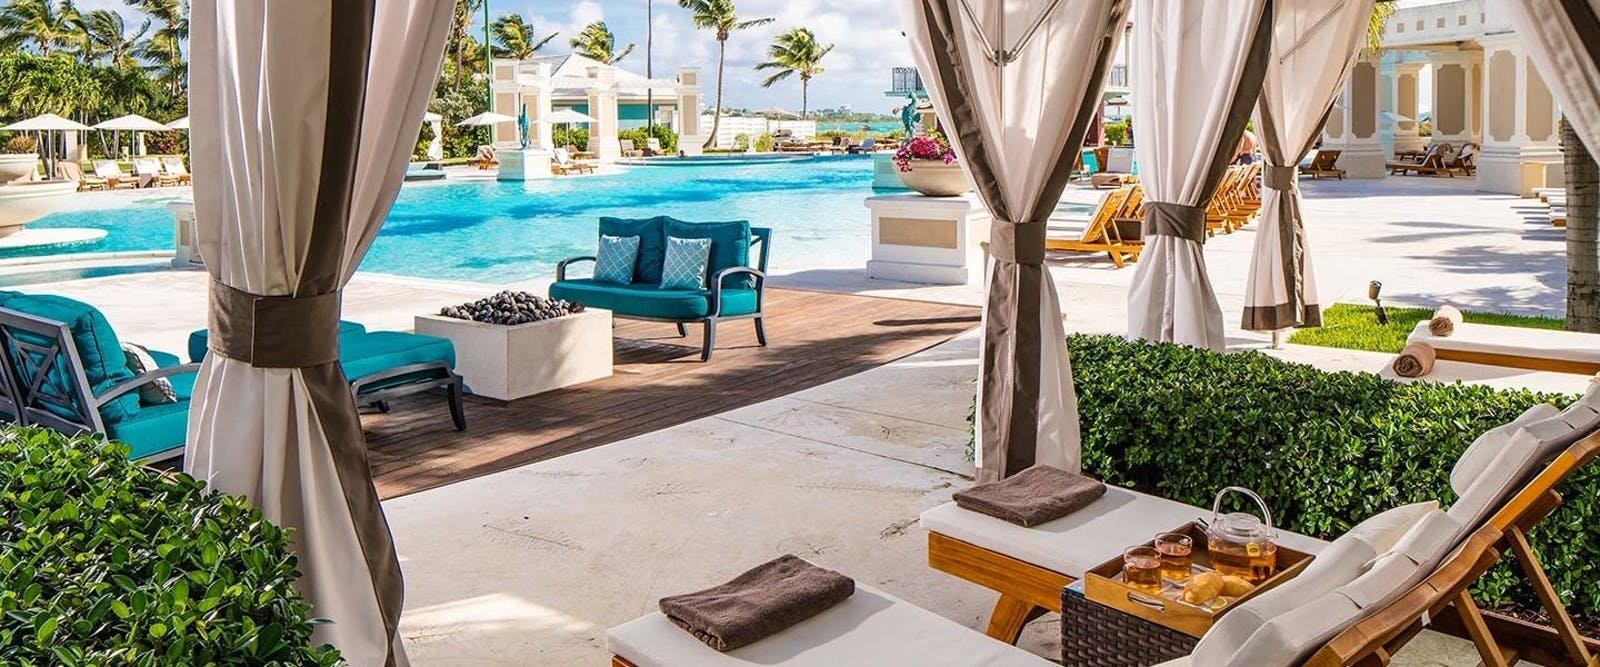 Poolside Cabanas at Sandals Emerald Bay Golf, Tennis & Spa Resort, Bahamas, Caribbean